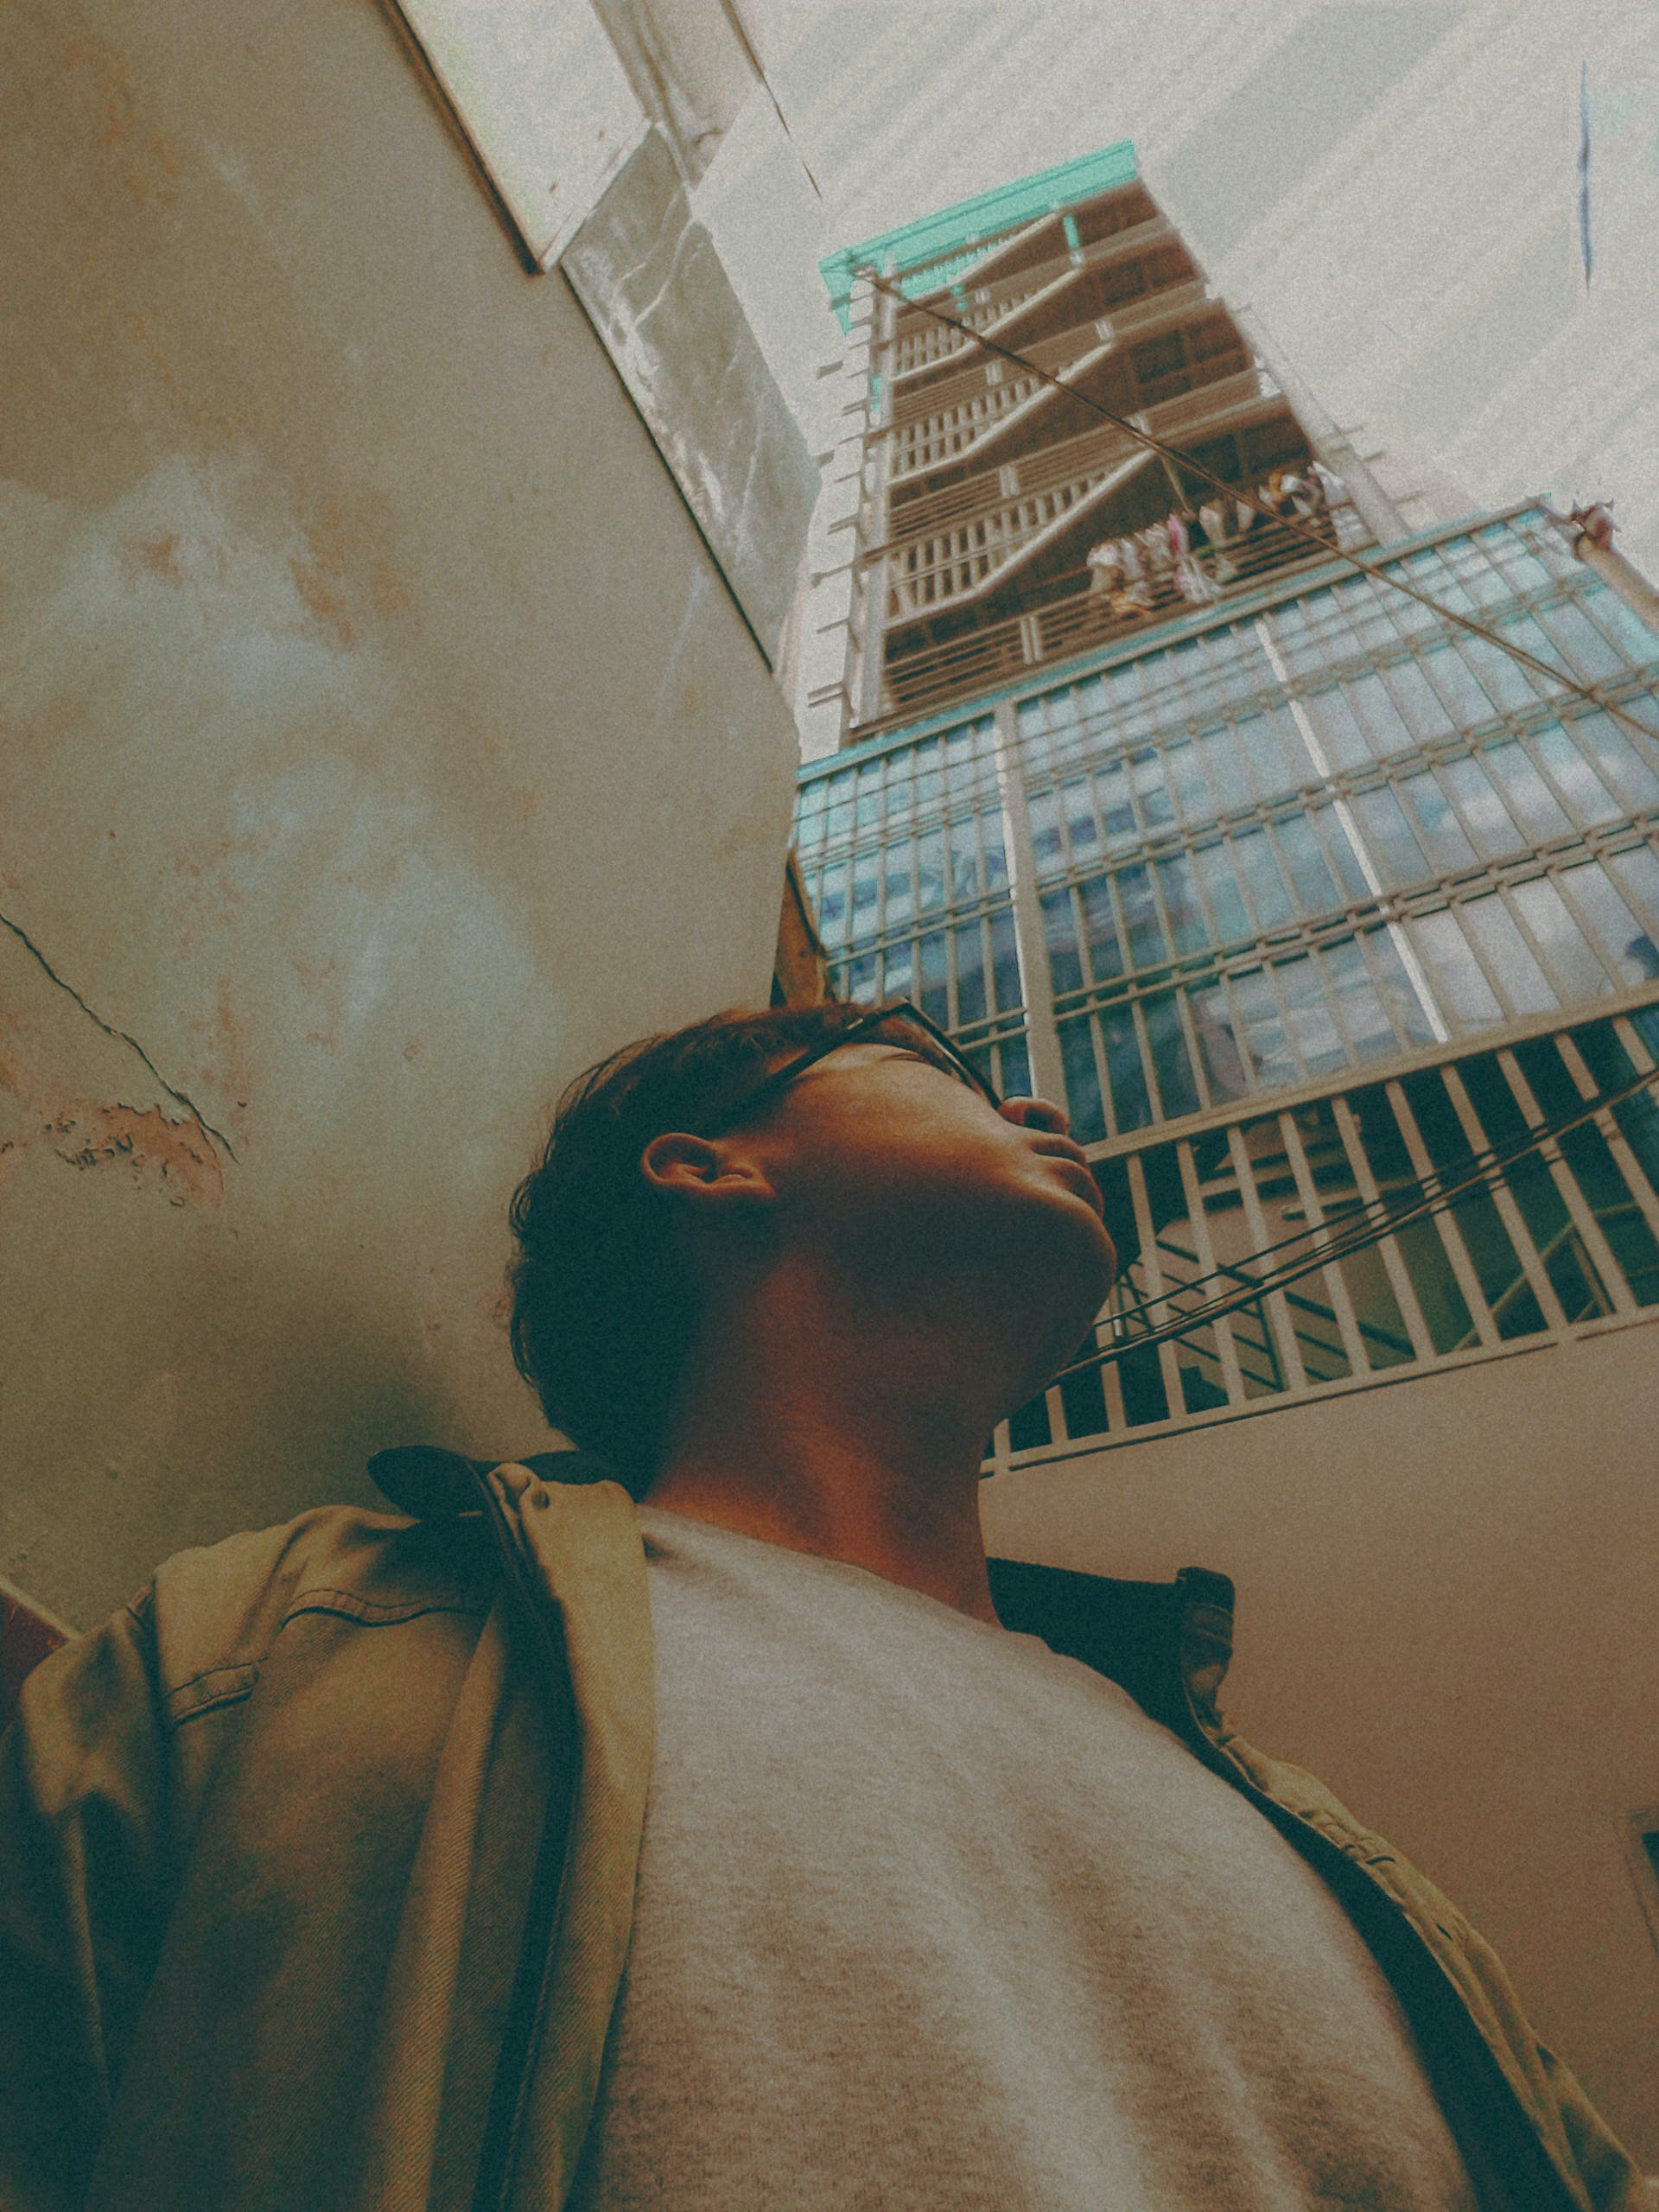 Man in Brown Jacket Looking up at a Tall Building